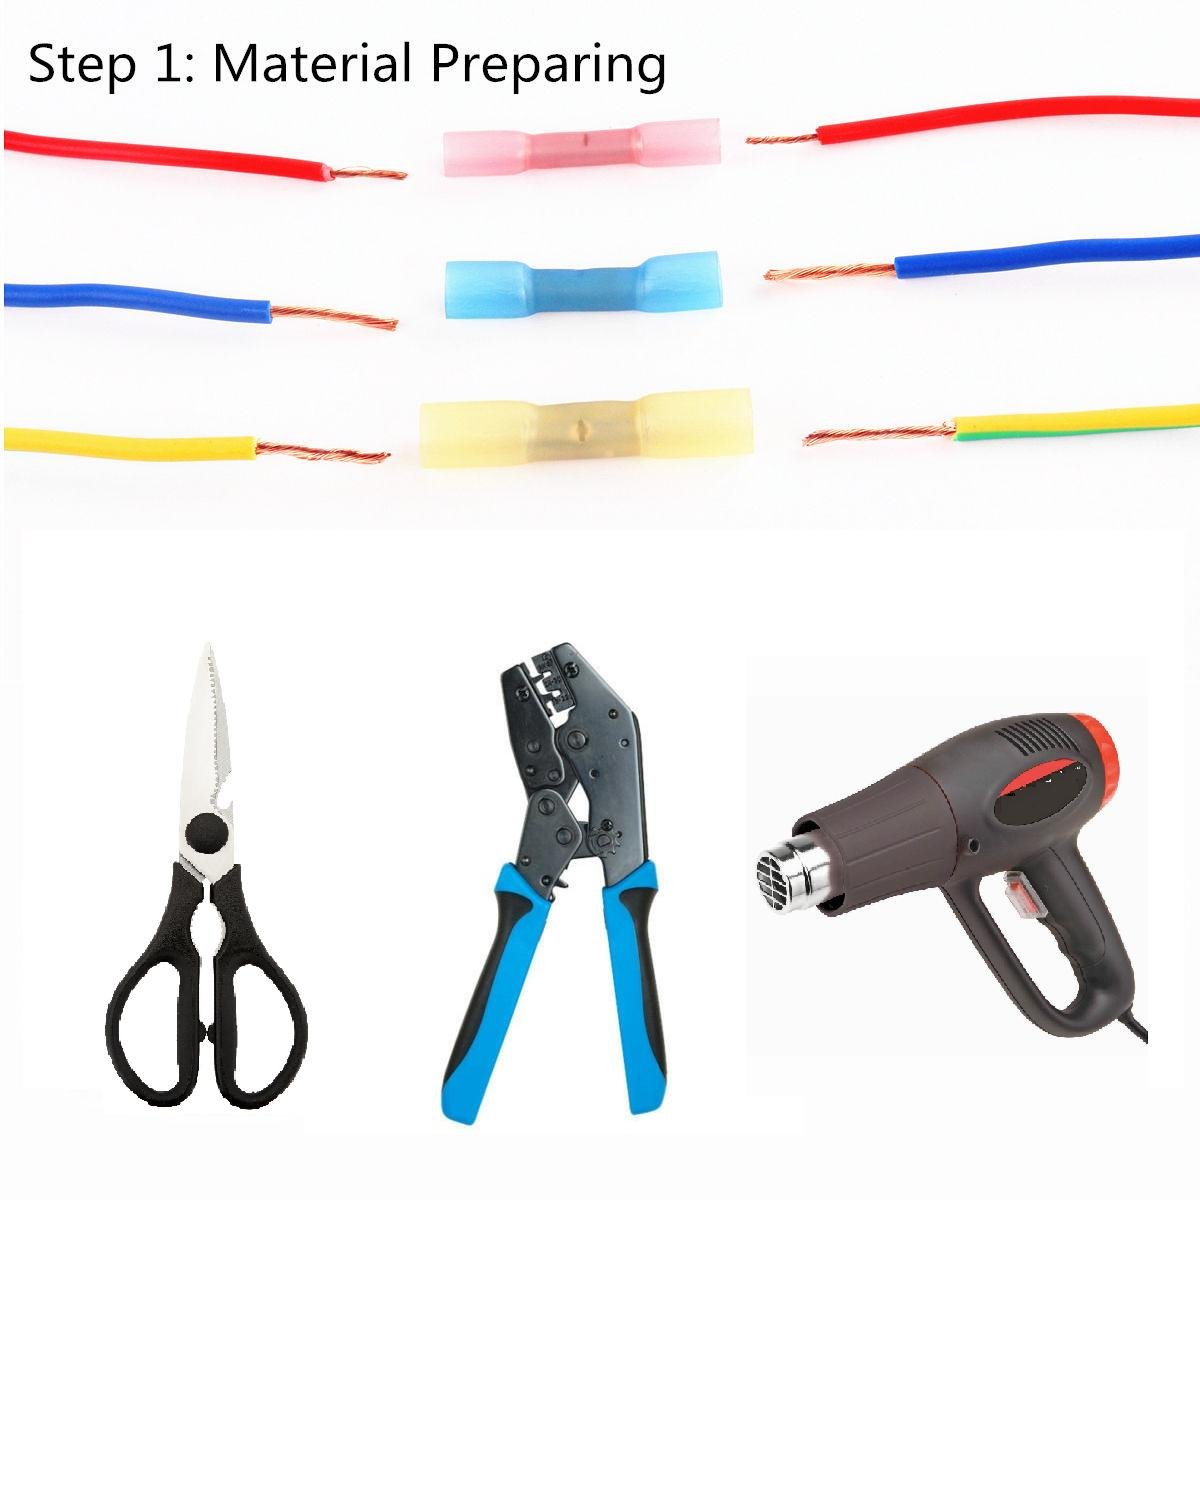 Fotag 100pcs Insulated Heat Shrink Butt Terminal Connectors Electrical Wire Waterproof Marine Automotive Crimp Grade Set Connector 10-22 AWG Kit